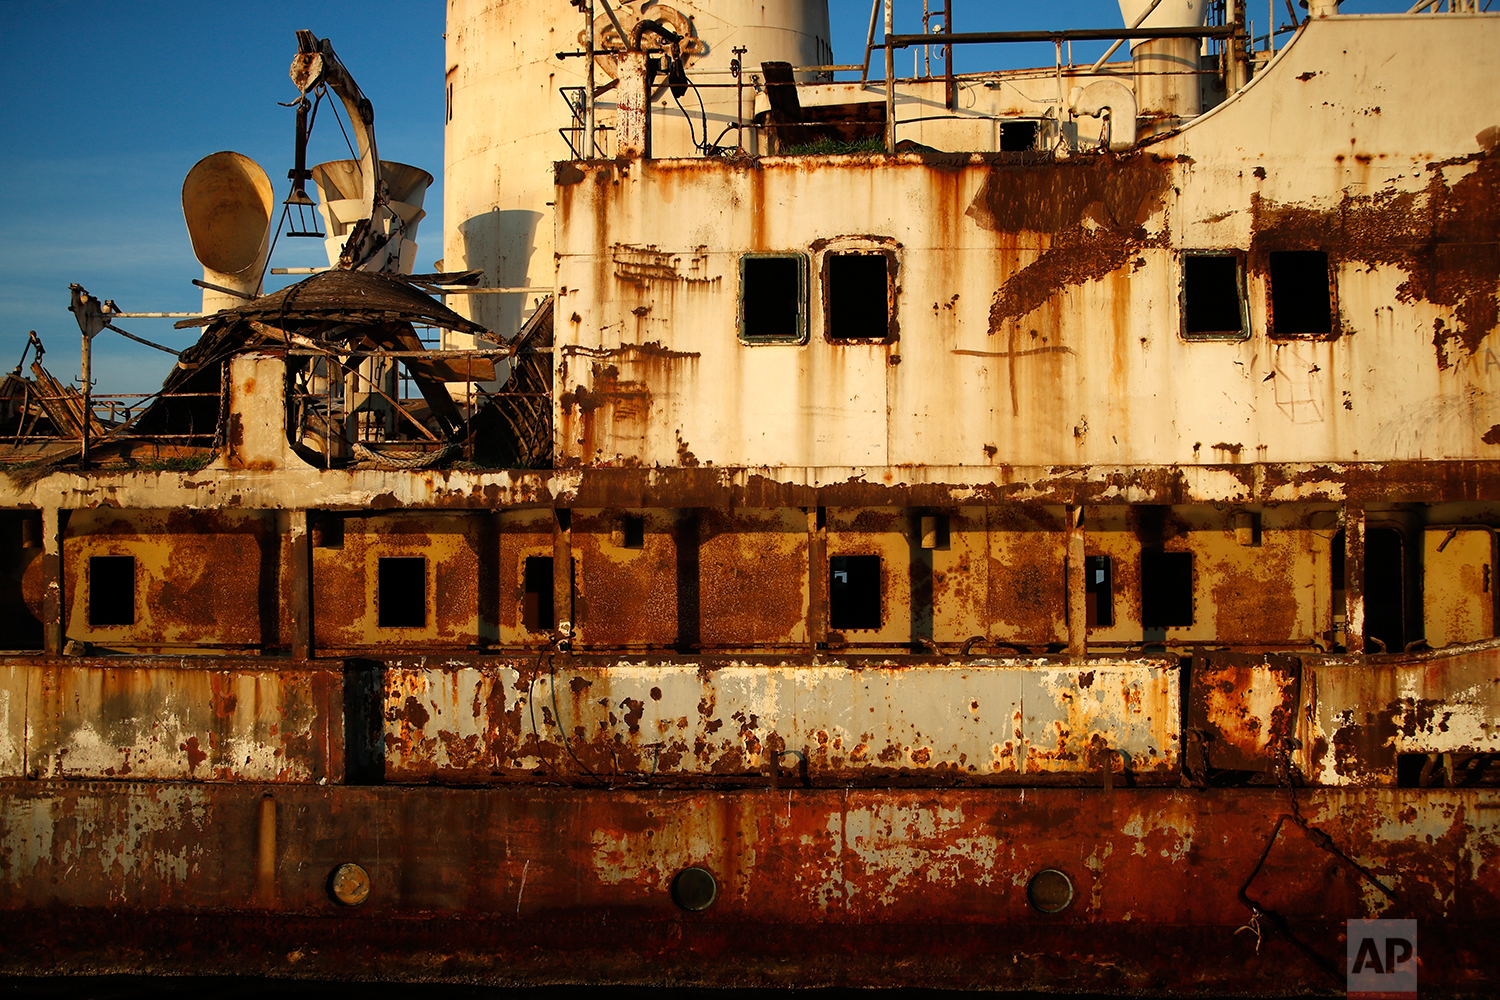 In this Friday, Dec. 4, 2018 photo, an abandoned ship is tied up in the Gulf of Elefsina, west of Athens. (AP Photo/Thanassis Stavrakis)